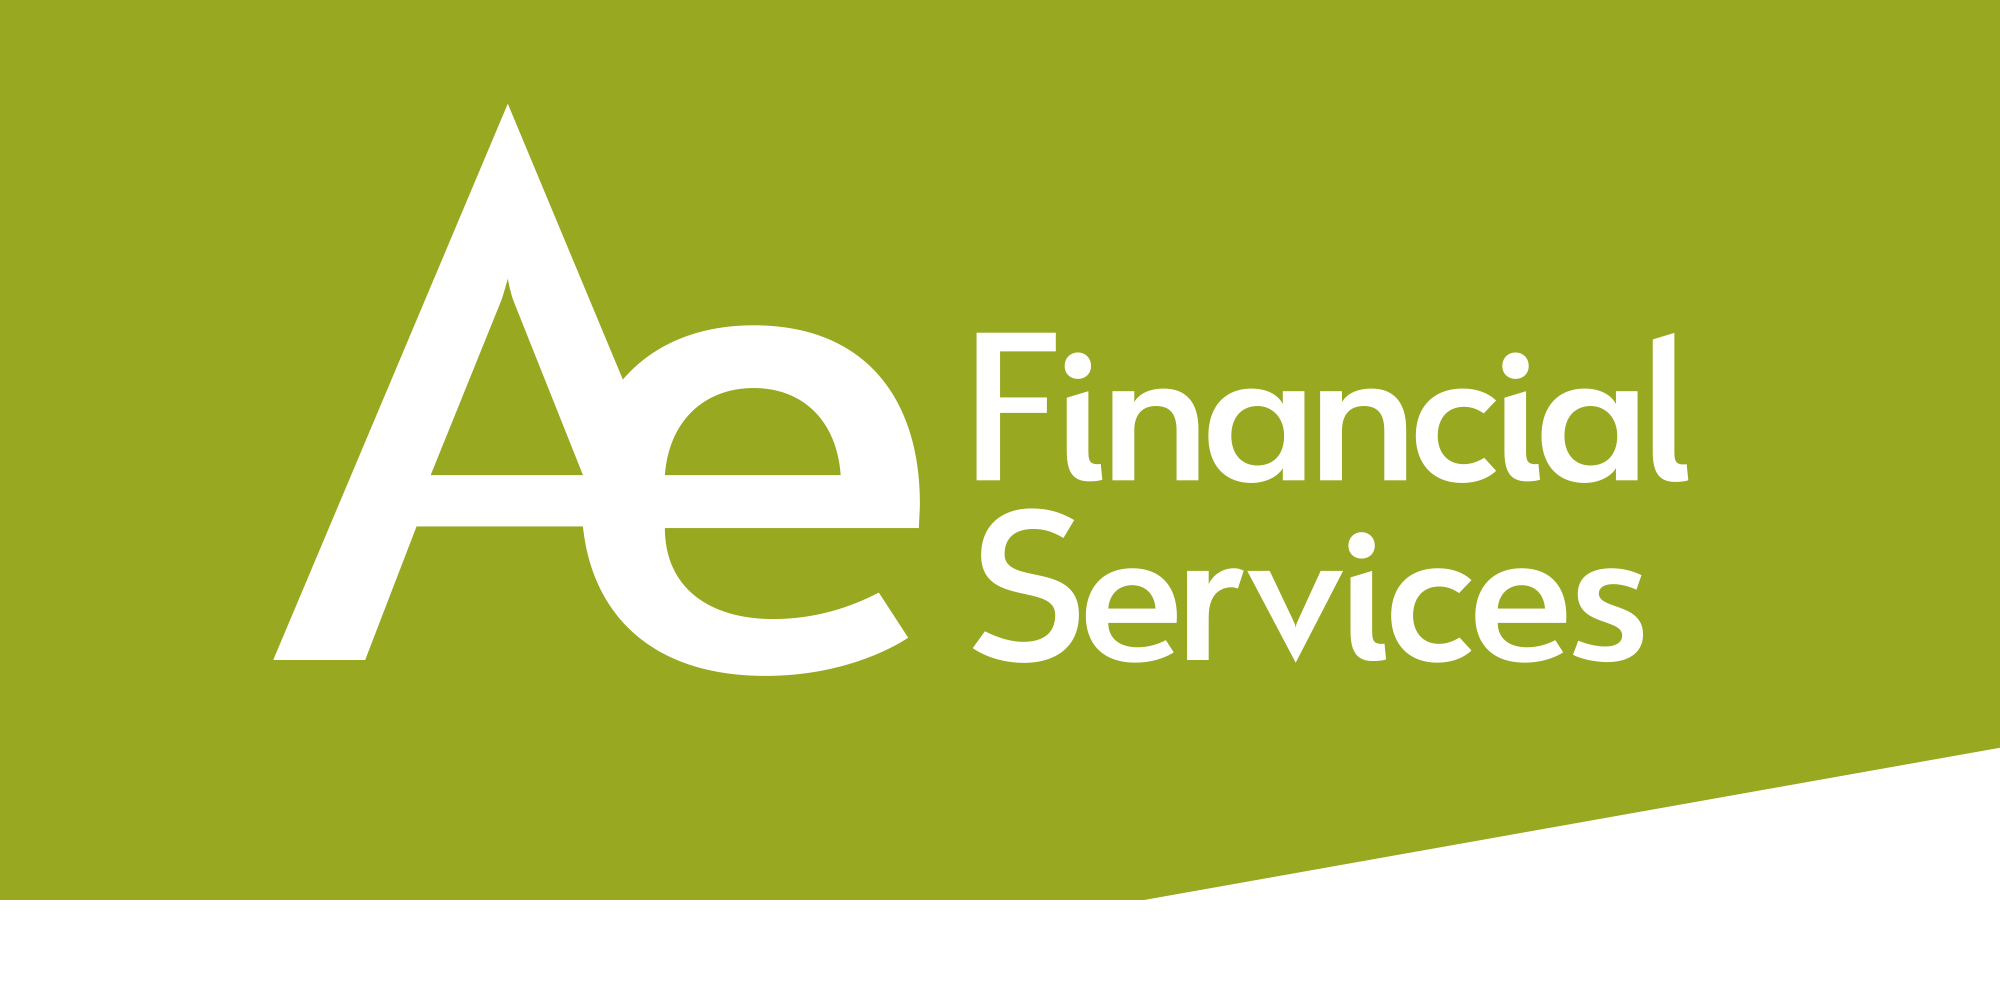 AE Financial Services Ltd